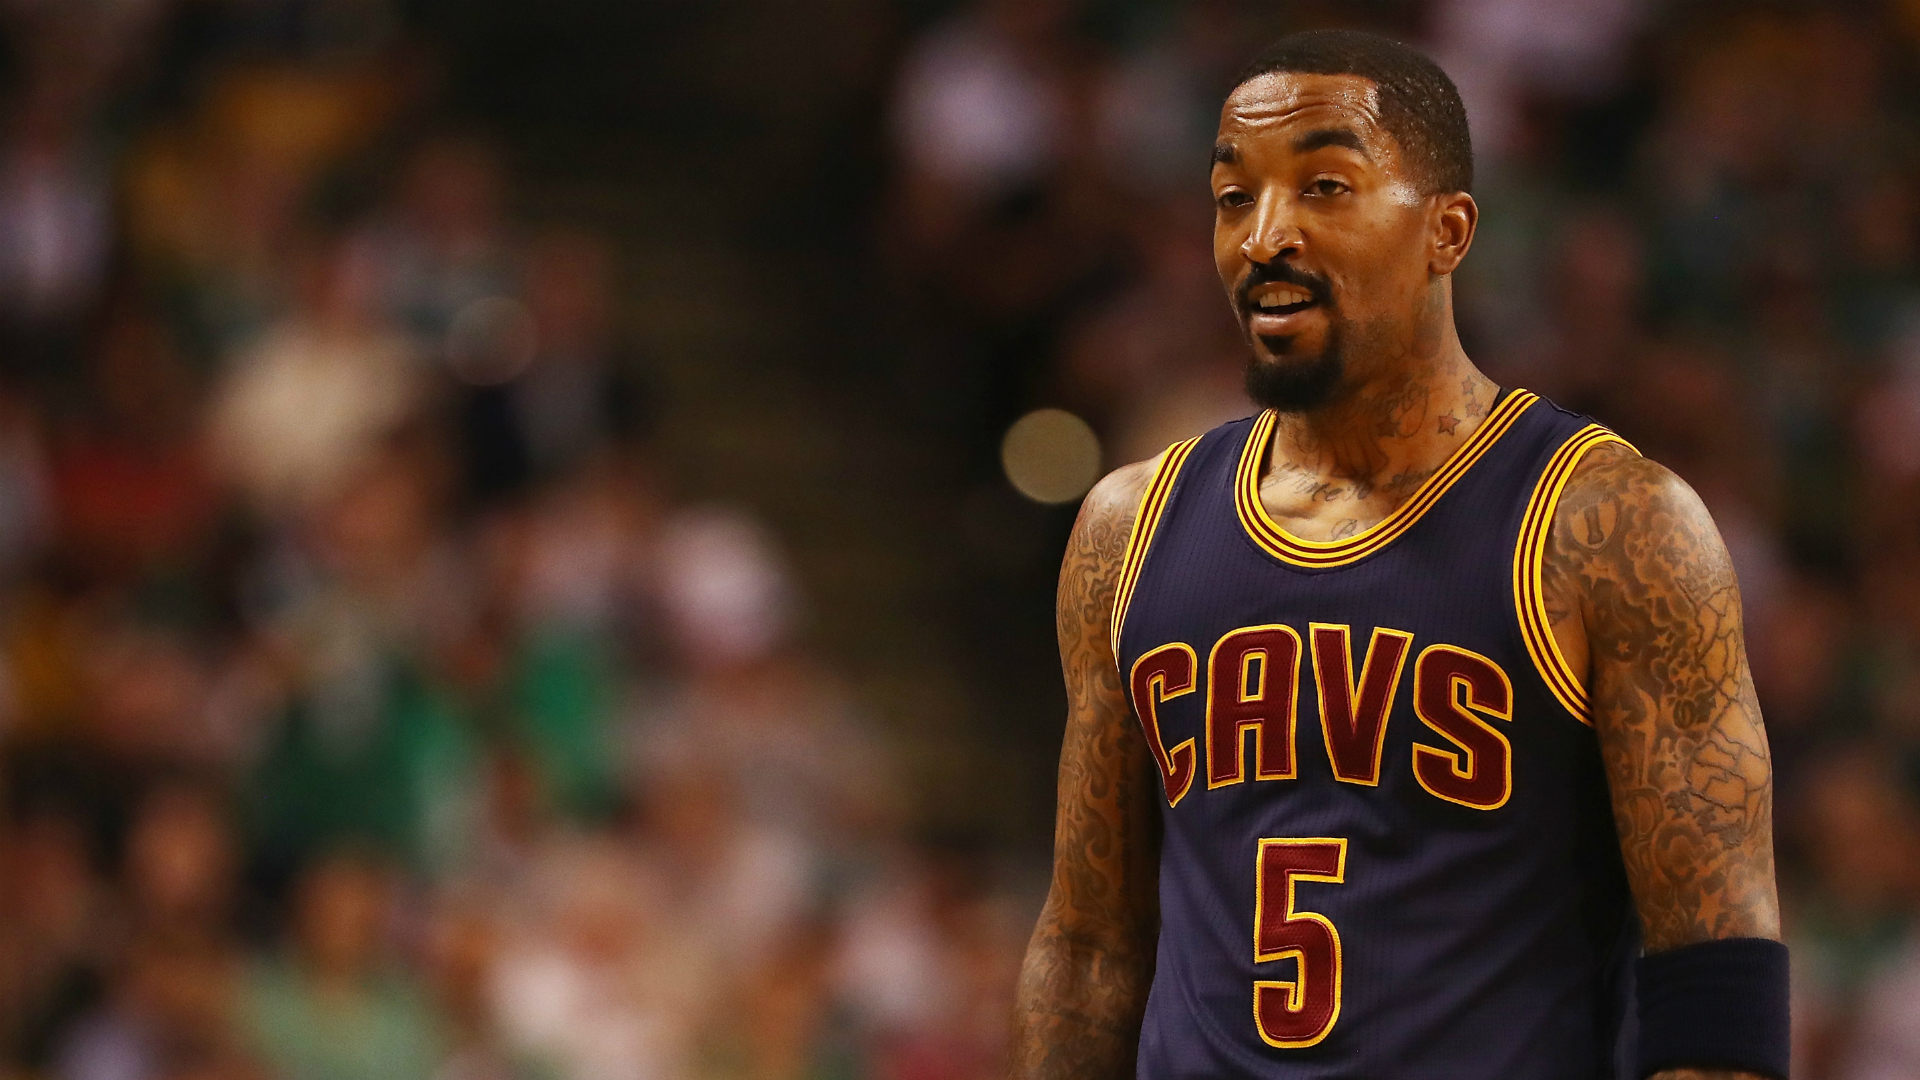 The Cleveland Cavaliers announced JR Smith's one-game ban two hours before Thursday's NBA clash against the Philadelphia 76ers.